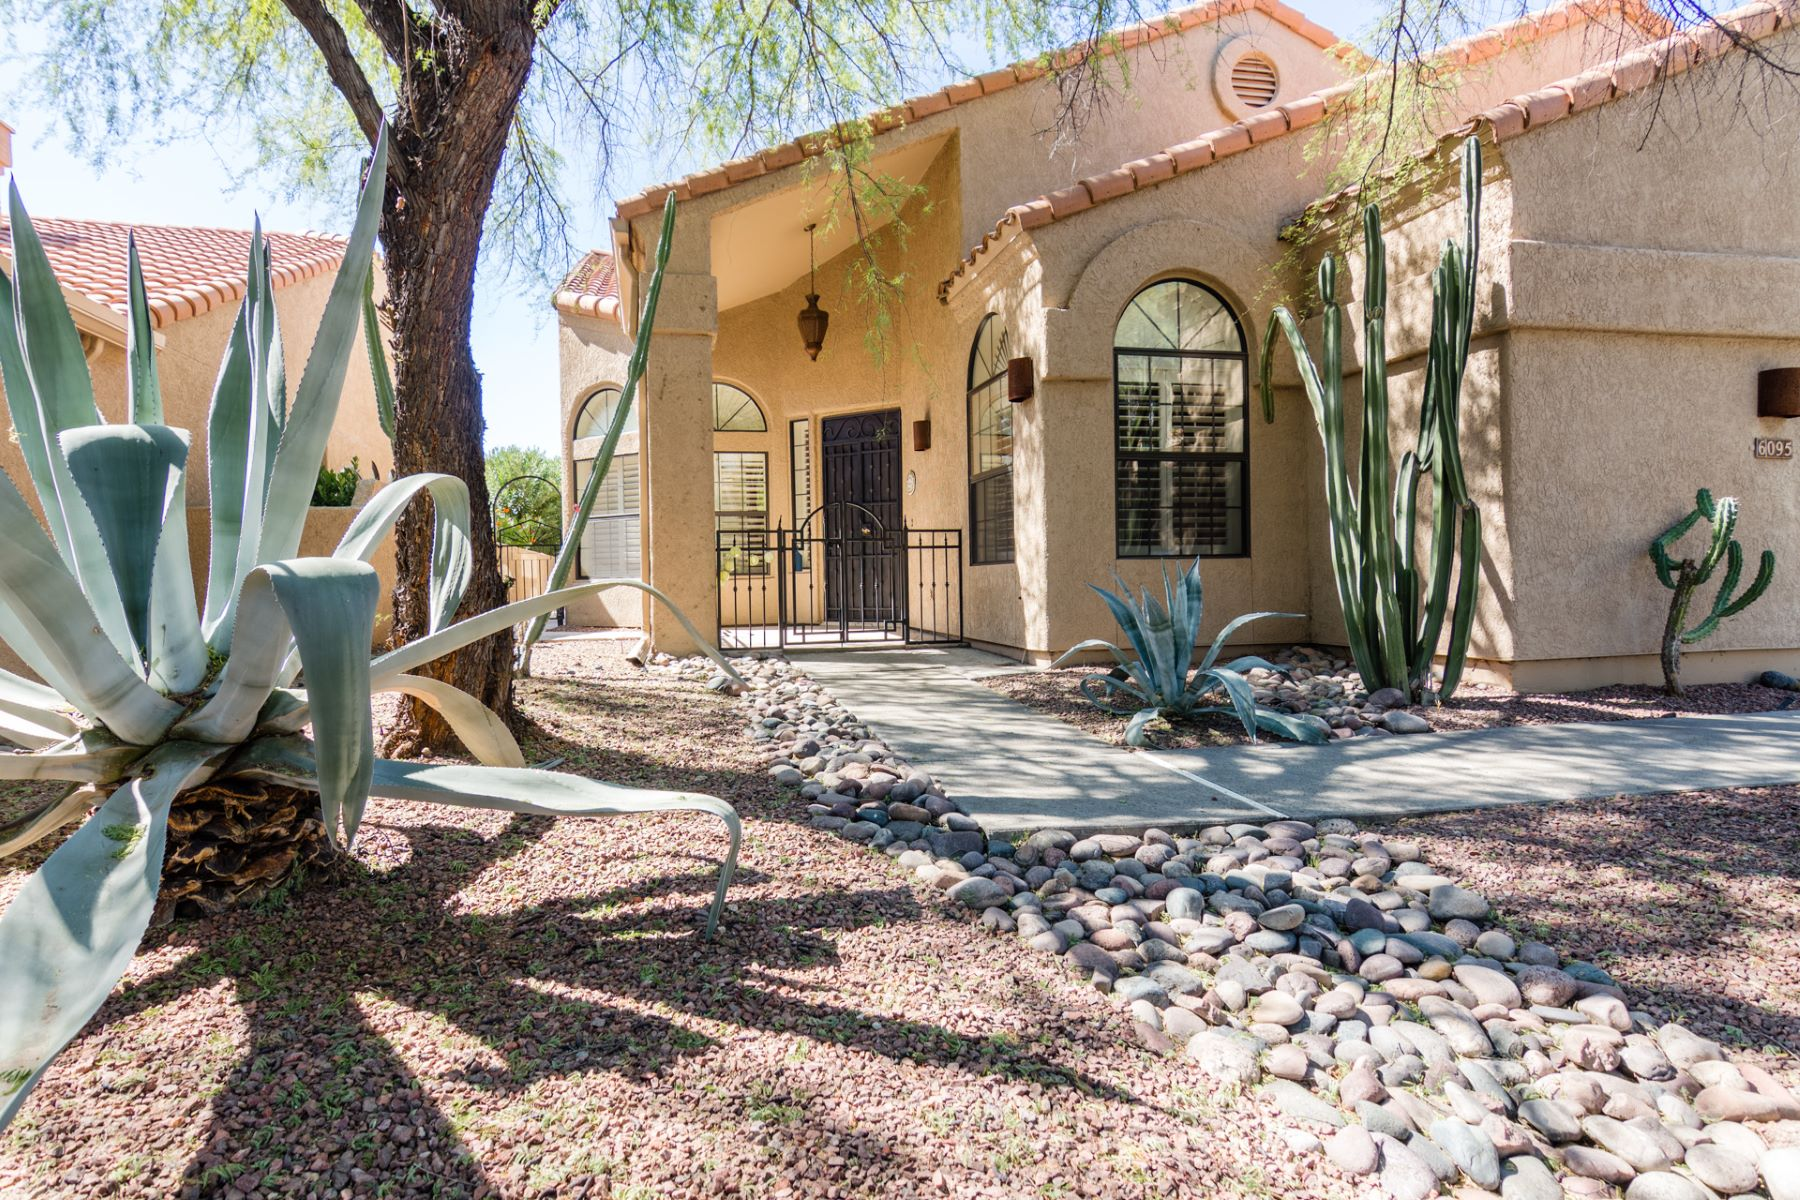 Townhouse for Sale at Beautifully Maintained Golf Villa 6095 N. Black Bear Loop, Tucson, Arizona, 85750 United States